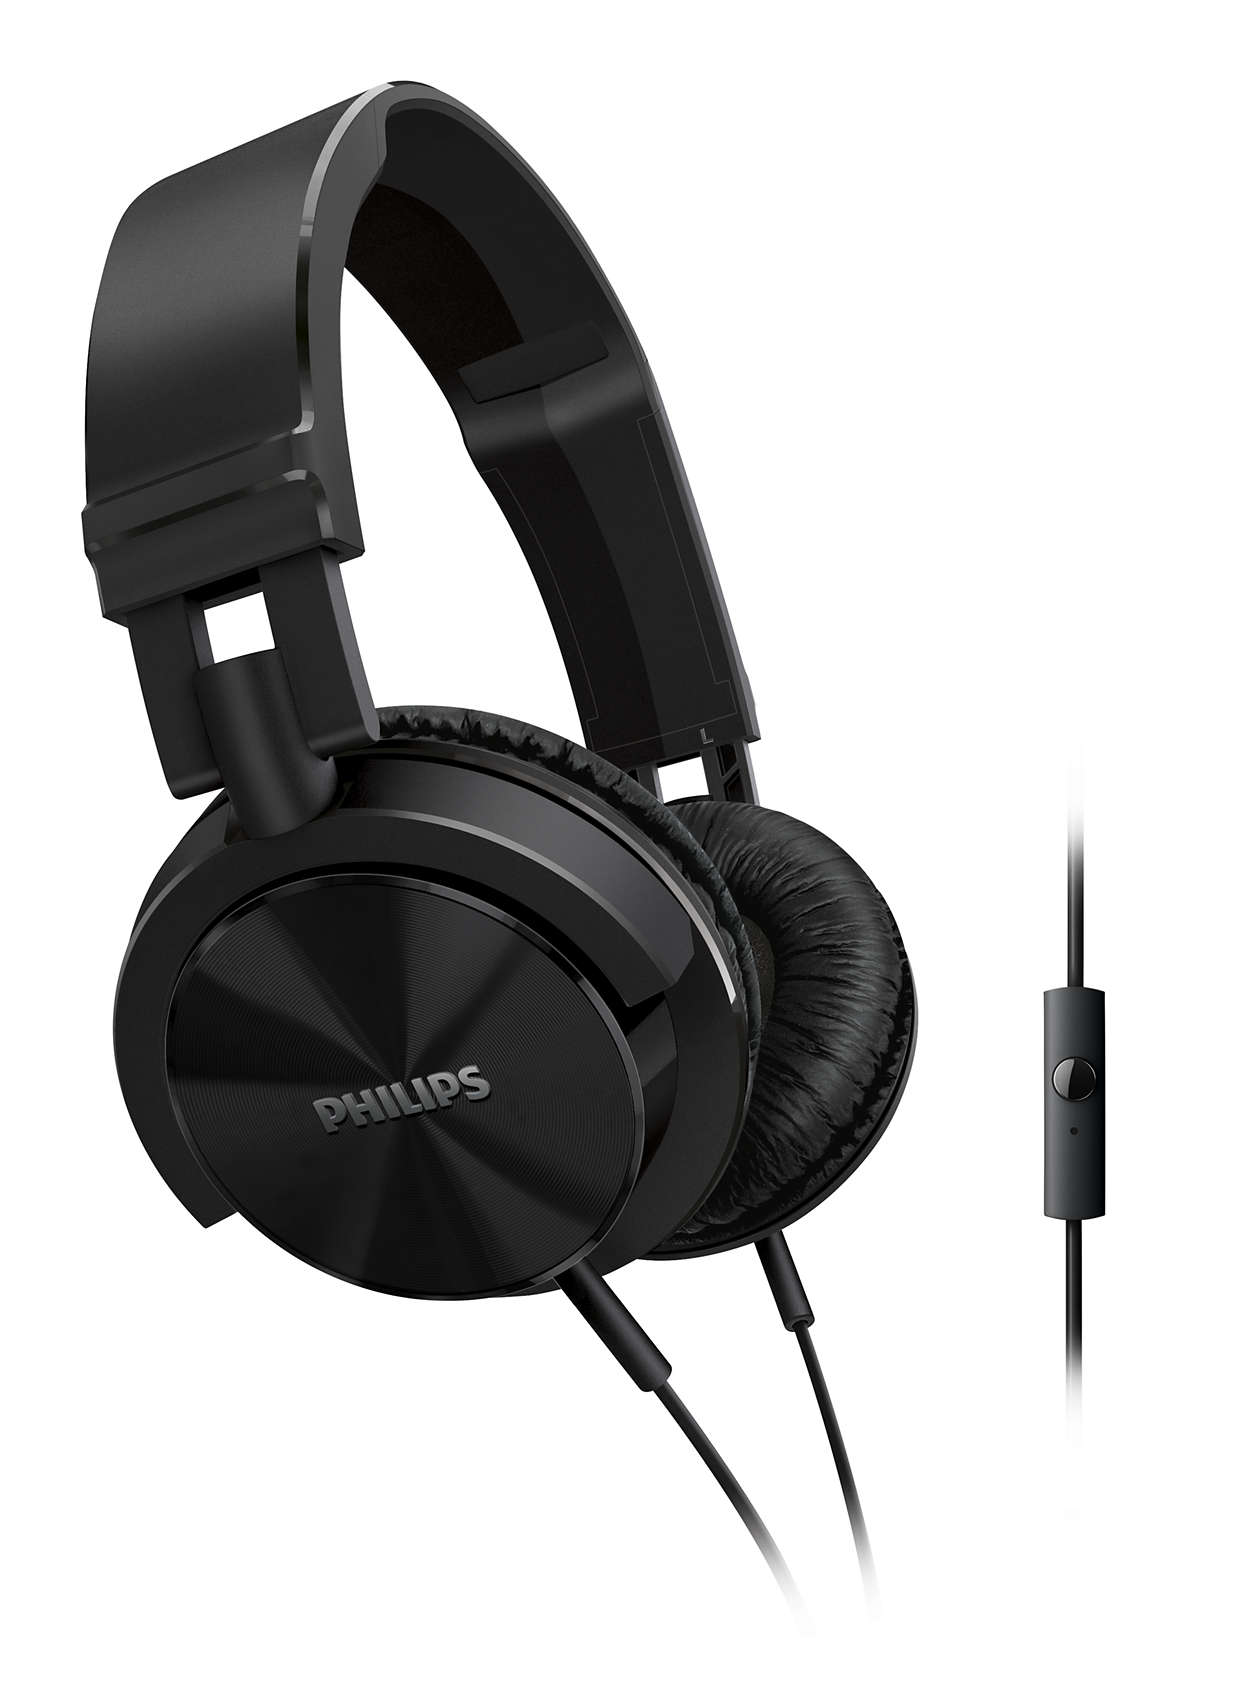 Headphones with mic shl3005bk00 philips download image publicscrutiny Choice Image